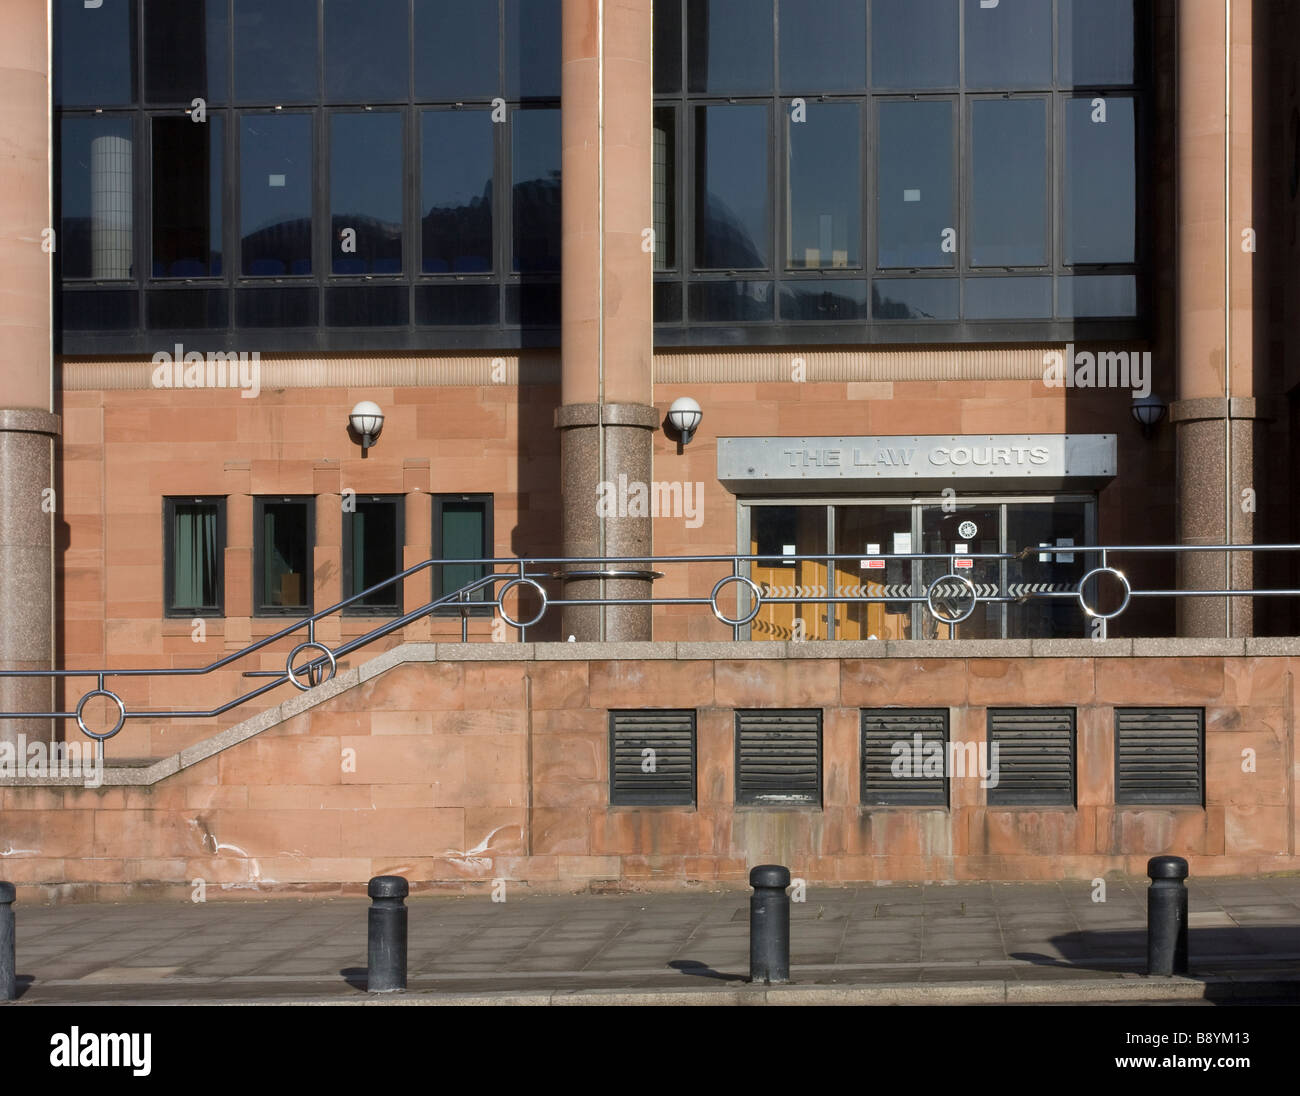 Newcastle Law Courts Entrance - Stock Image